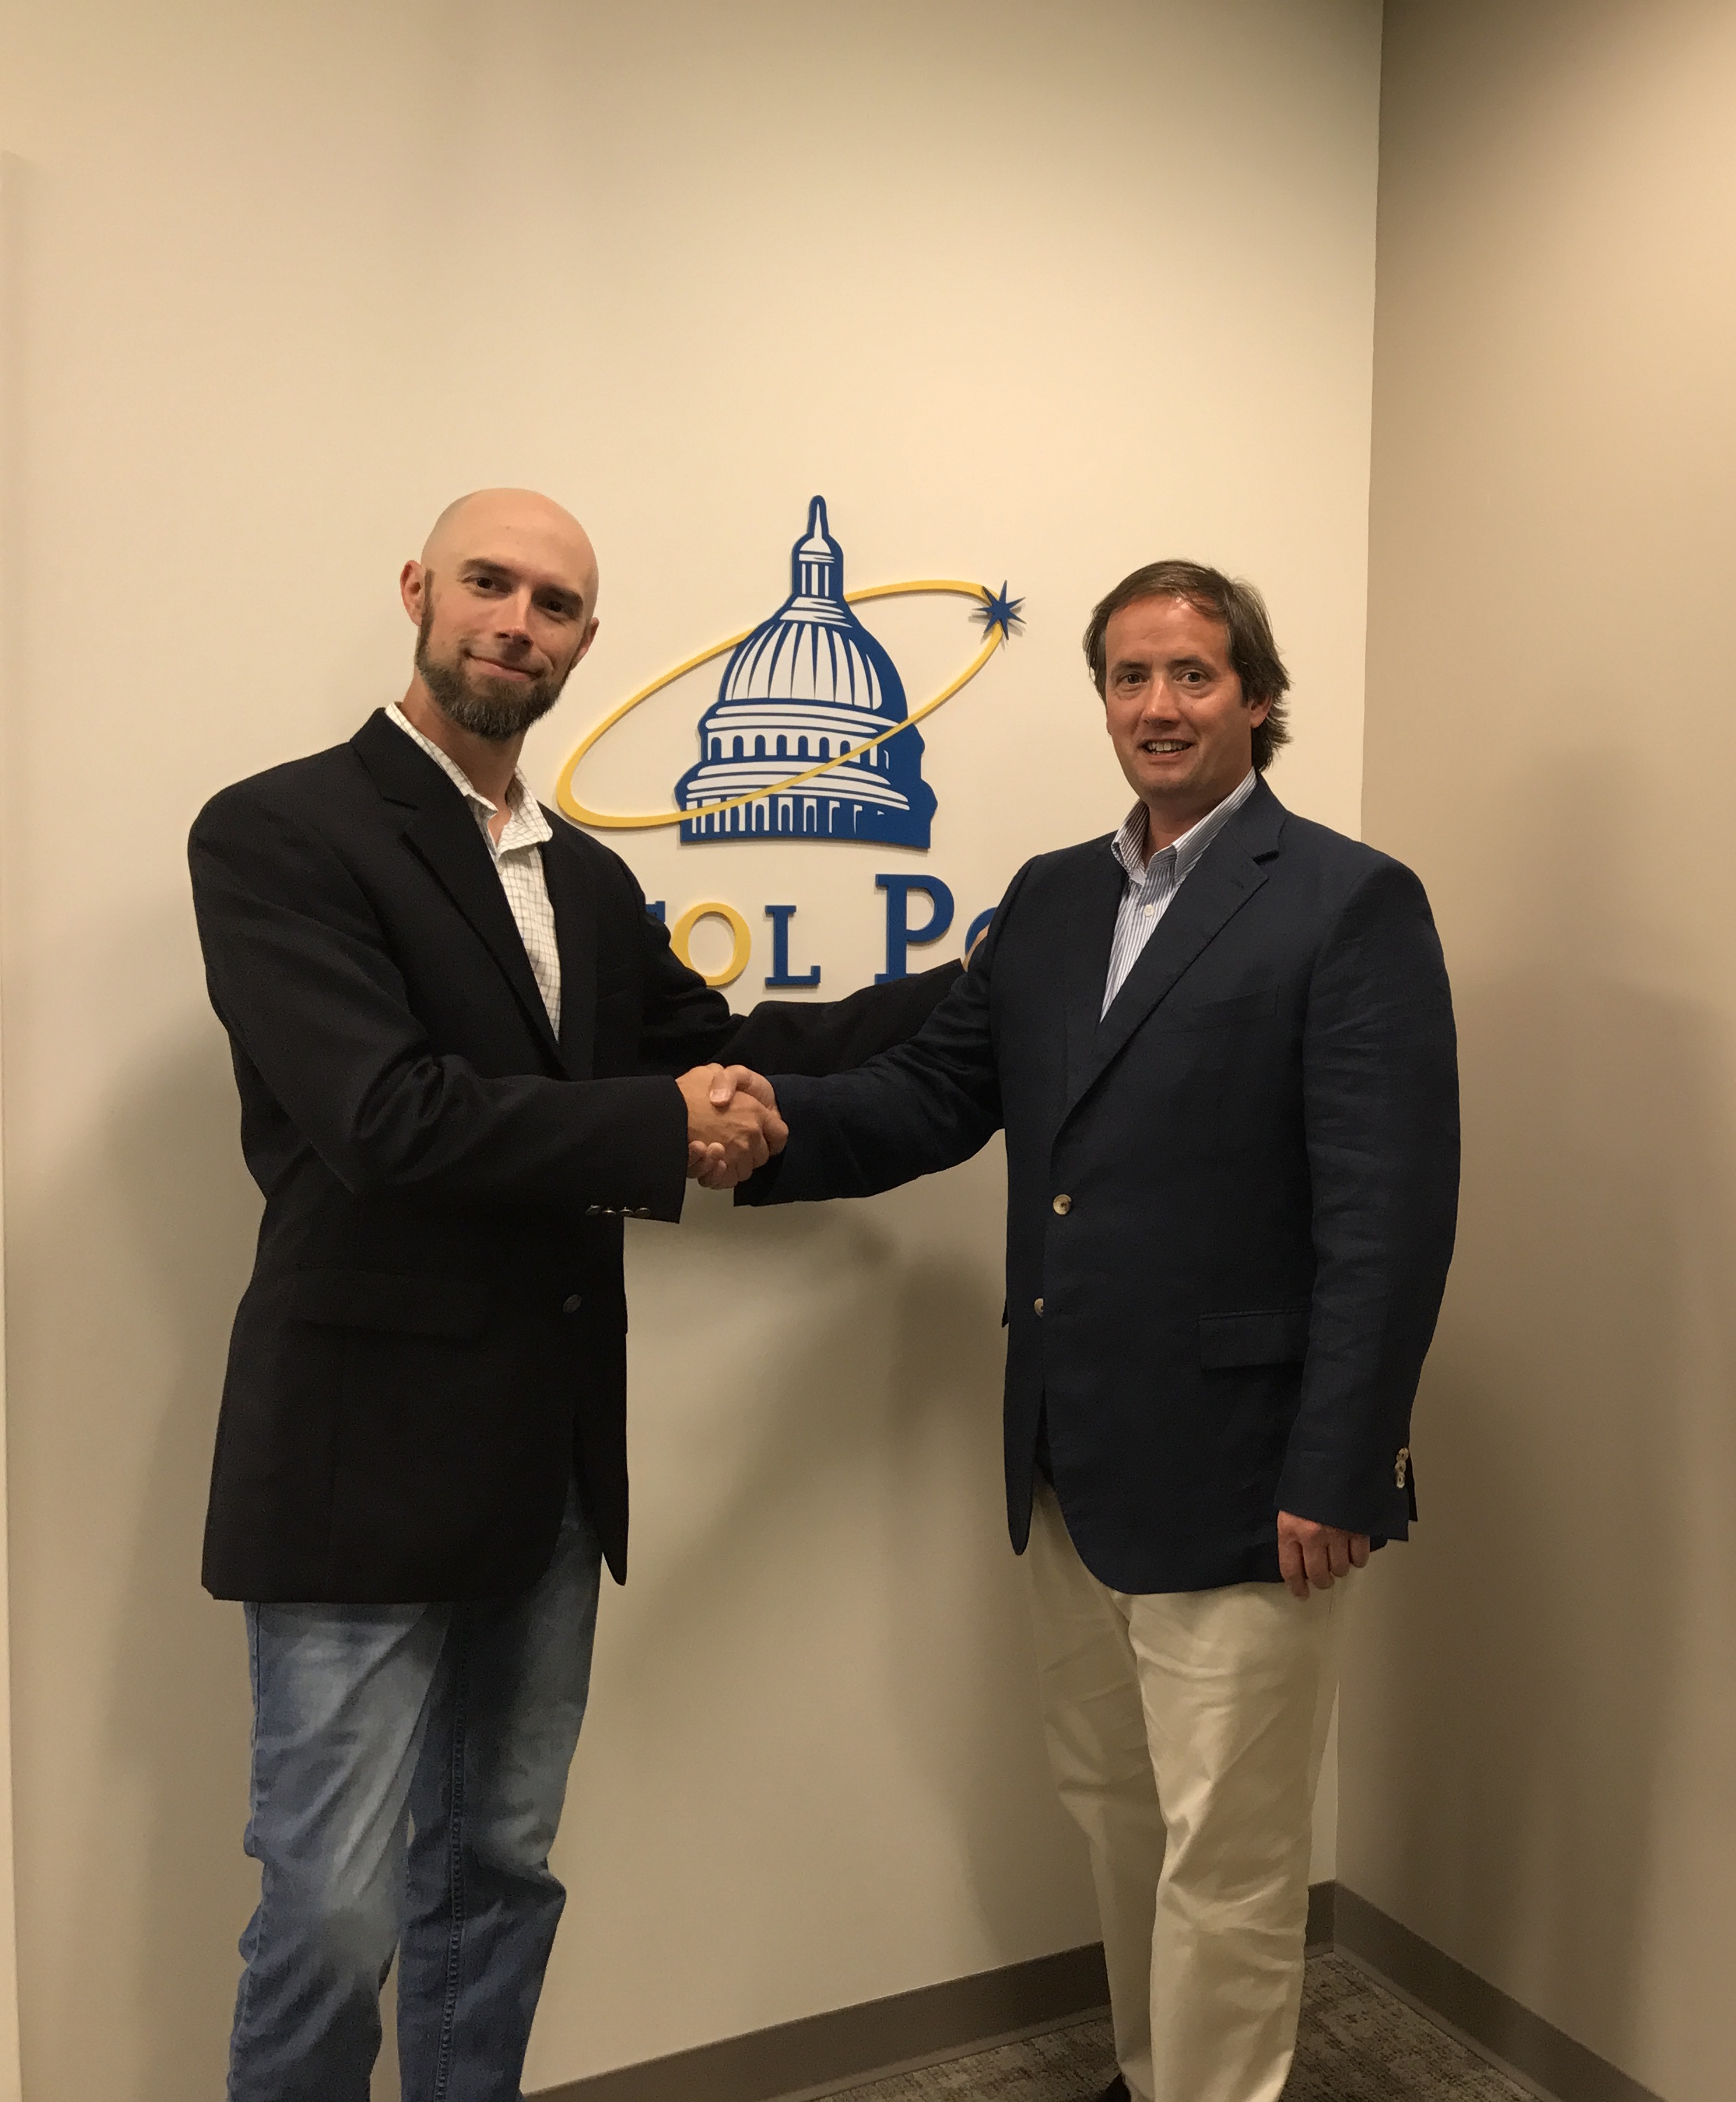 Terry Davies, Vice President - Special Projects, Capitol Power Group and Clive Gilmore, CEO and Co-founder, Hanley Energy LLC agree a Strategic Partnership to Deliver Next Generation Critical Power Solutions.